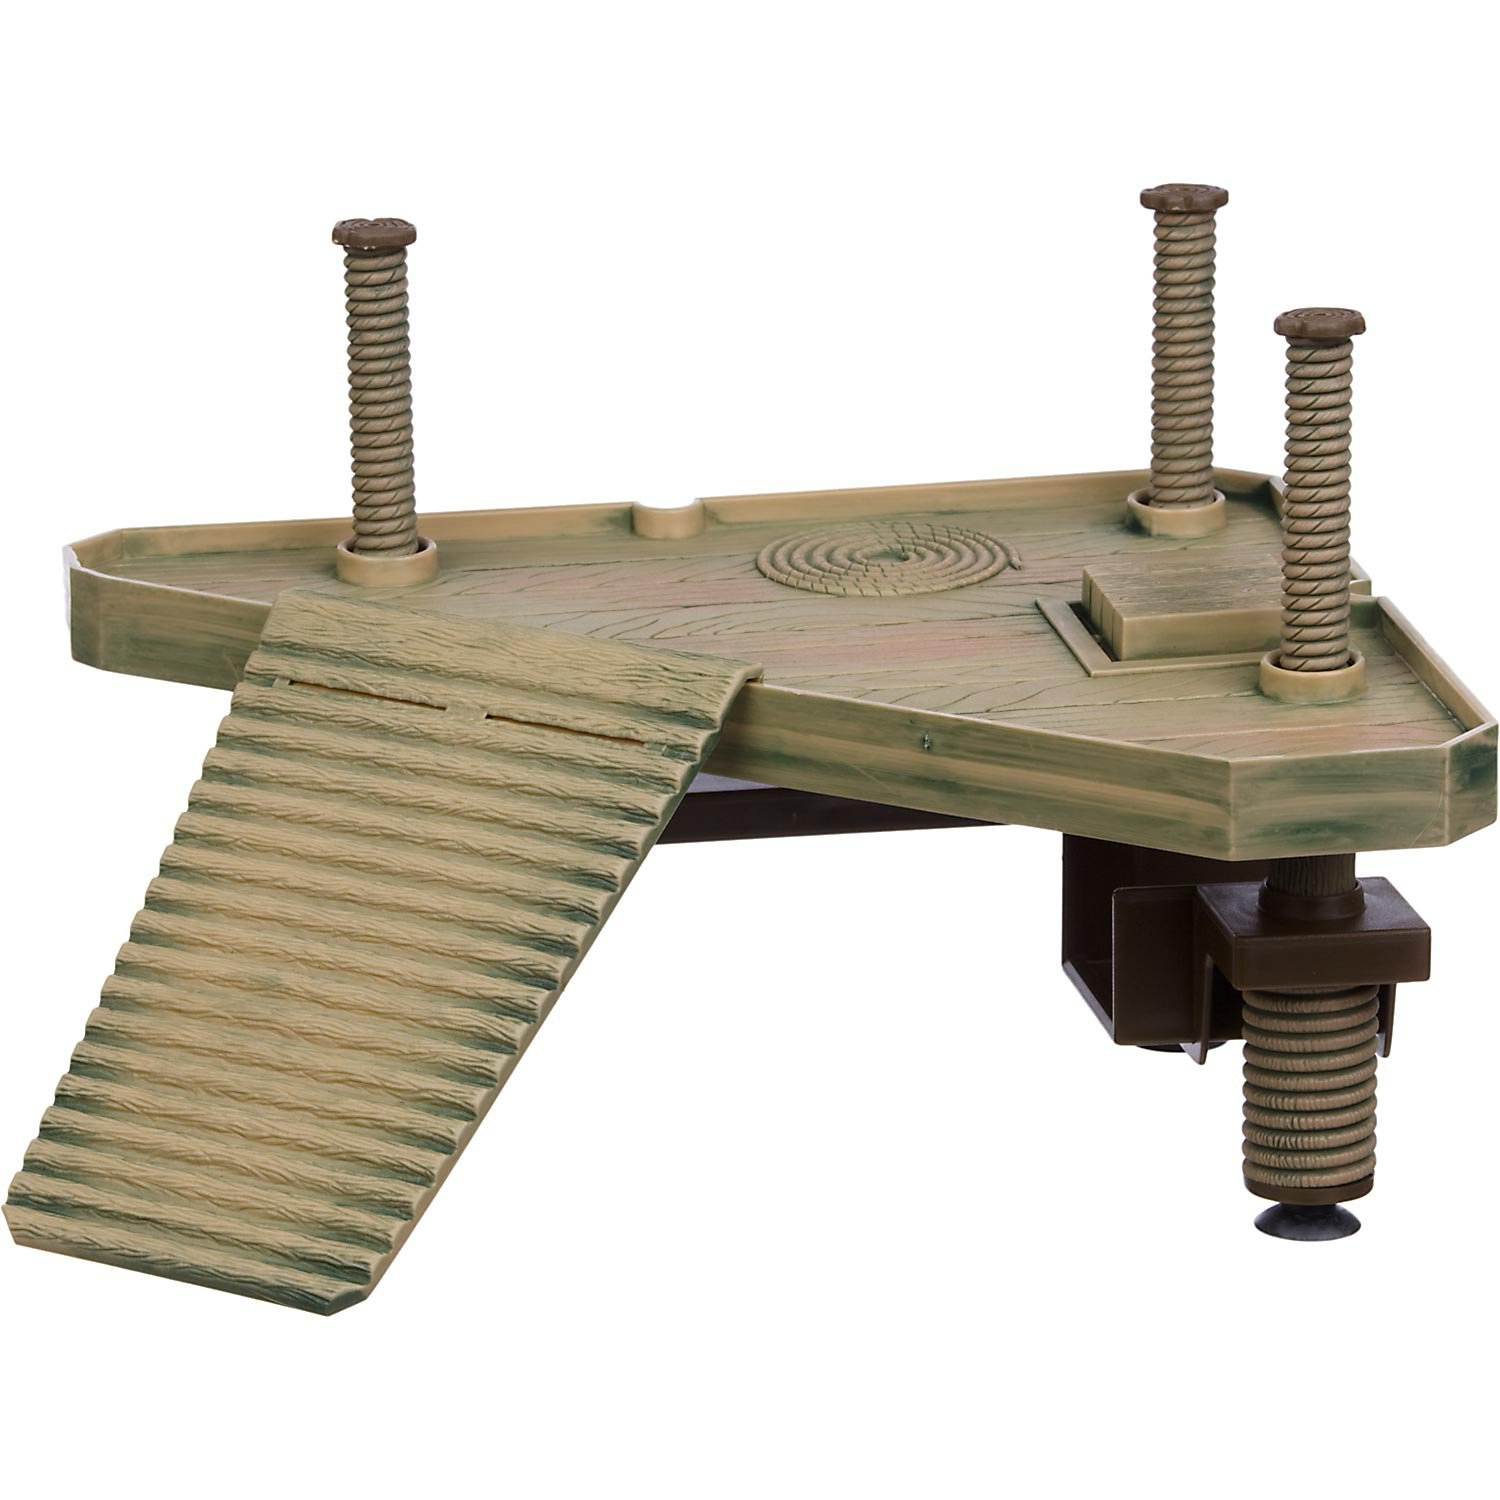 Amazon.com : Penn Plax Small Turtle Pier For Use In and Out Of Water ...